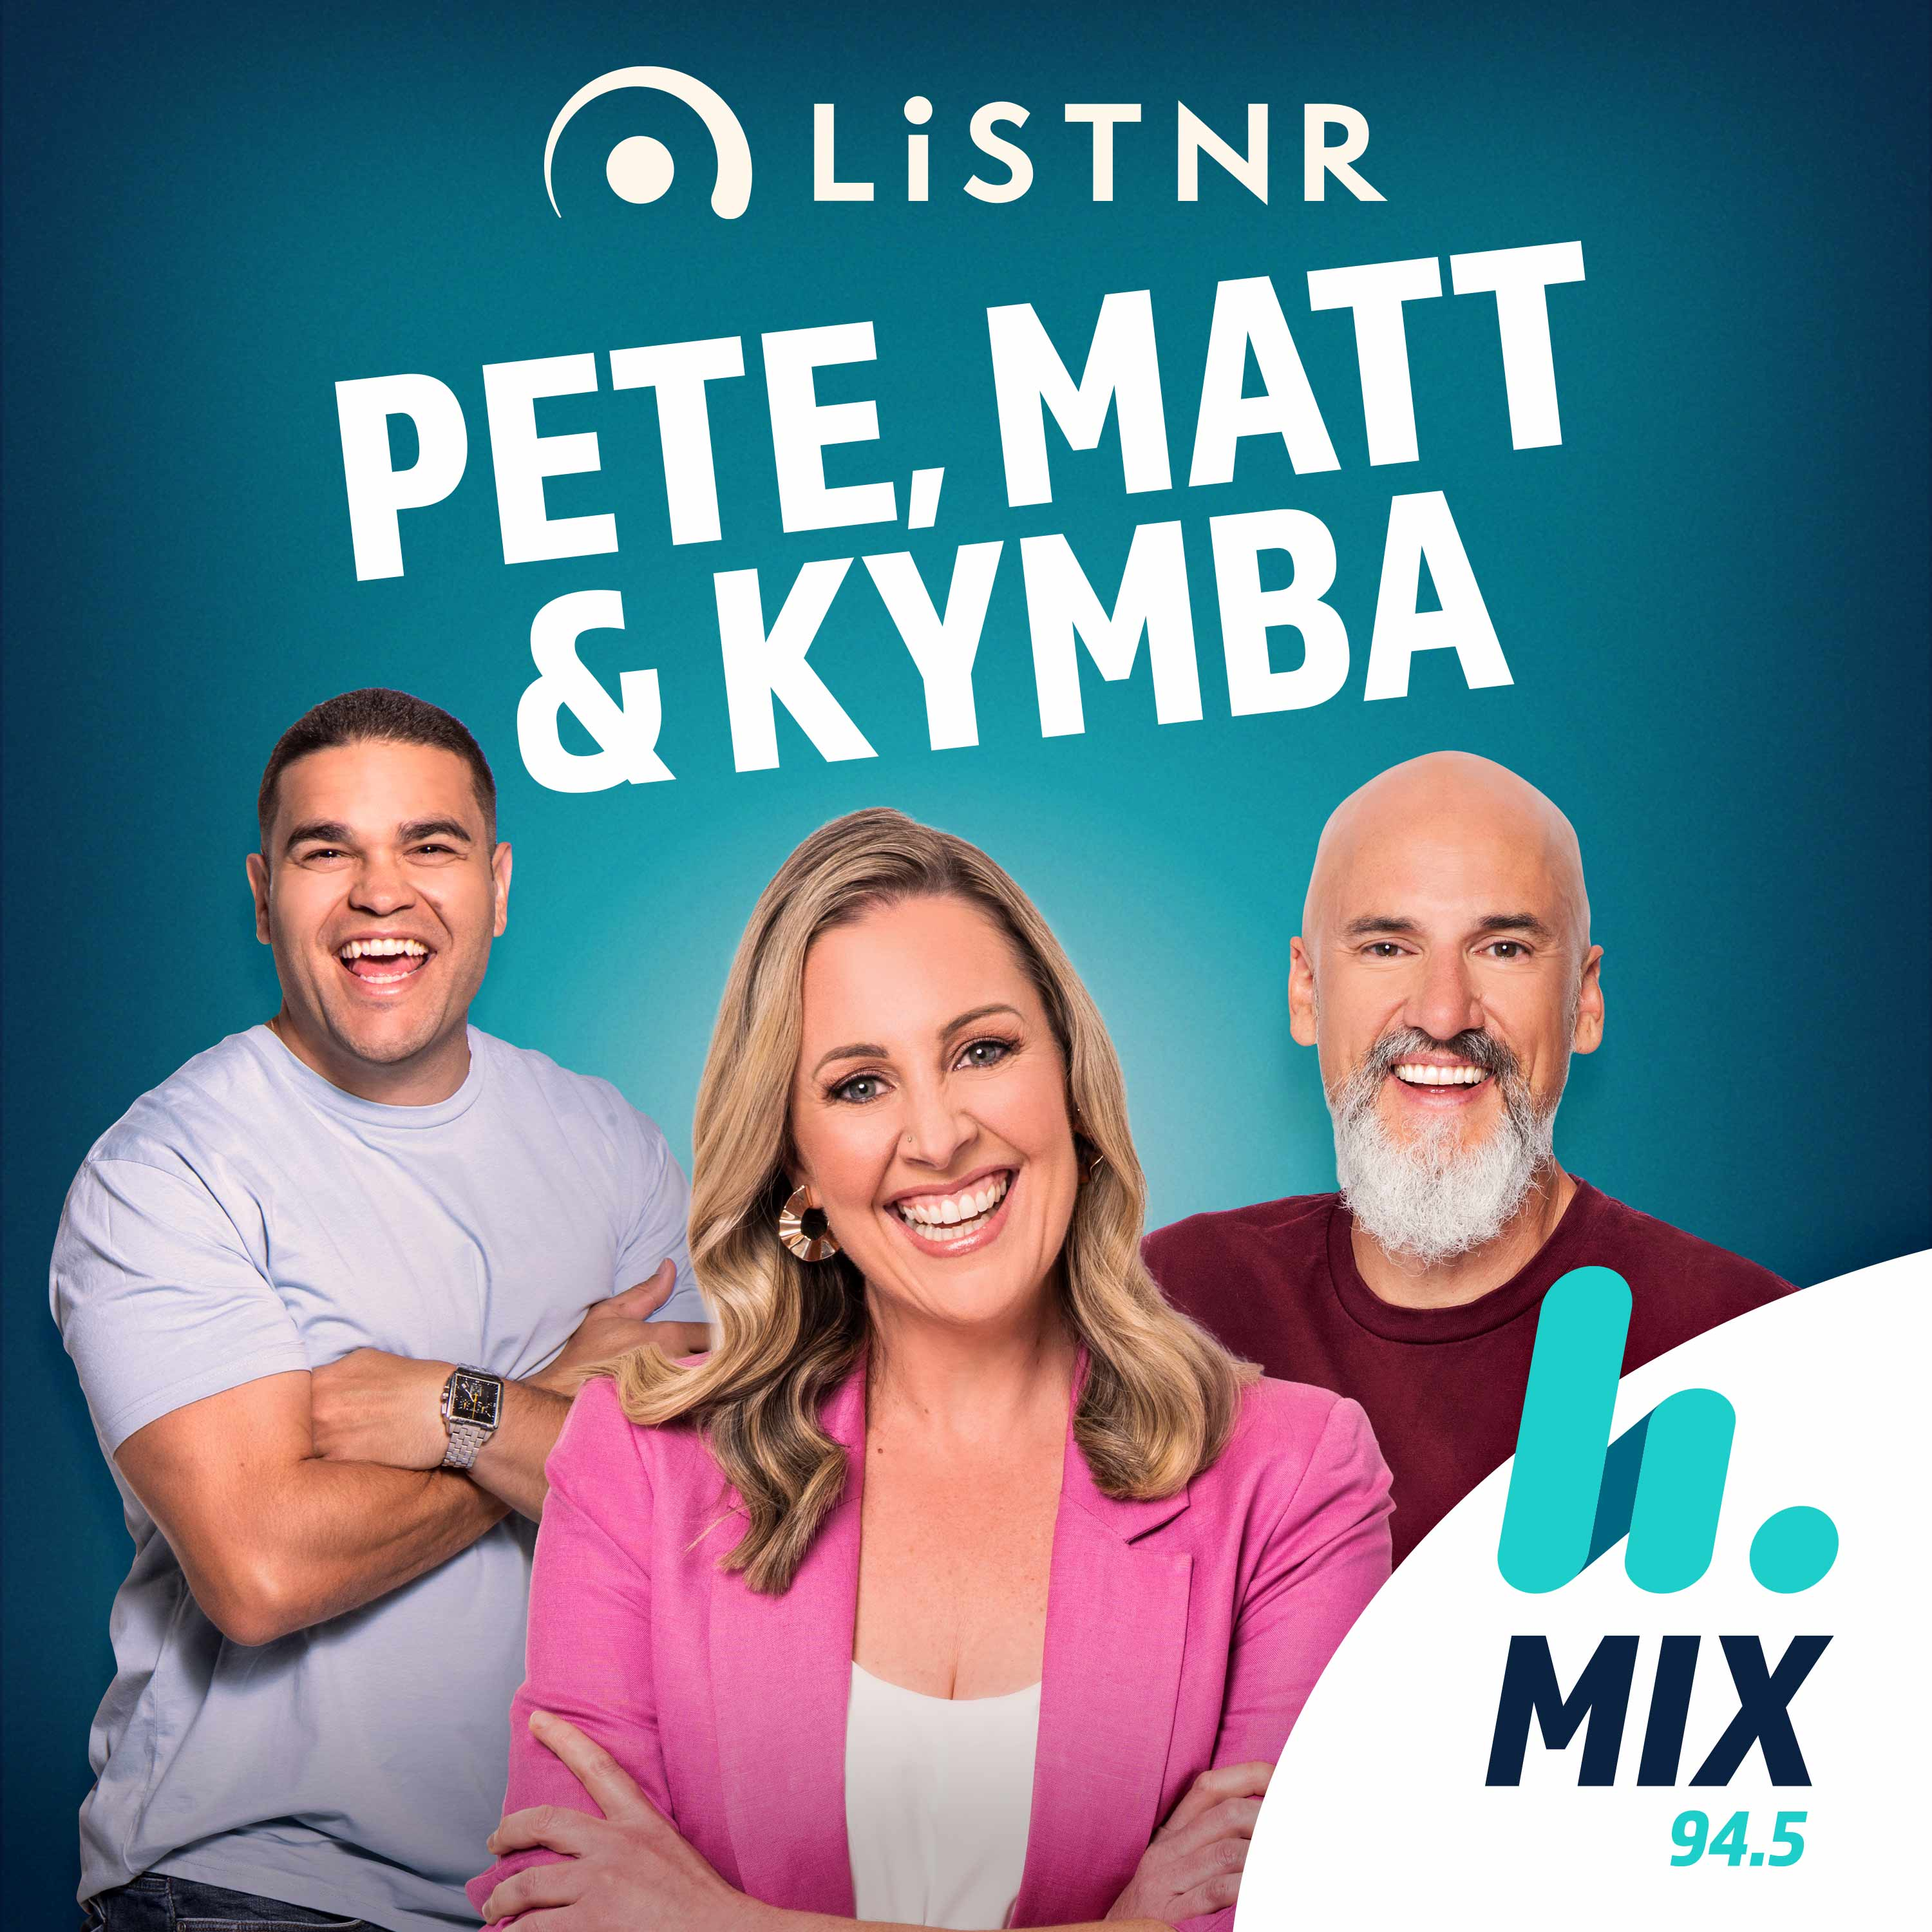 Mix Mailbag - Bunnings Sausage Sizzle Saga - Toto's Steve Lukather - Toy hall of fame - News Belinda Missed - Melbourne Window Washing Cops - Pressure Test - JUICE - Matt's Hits From Ya Hood